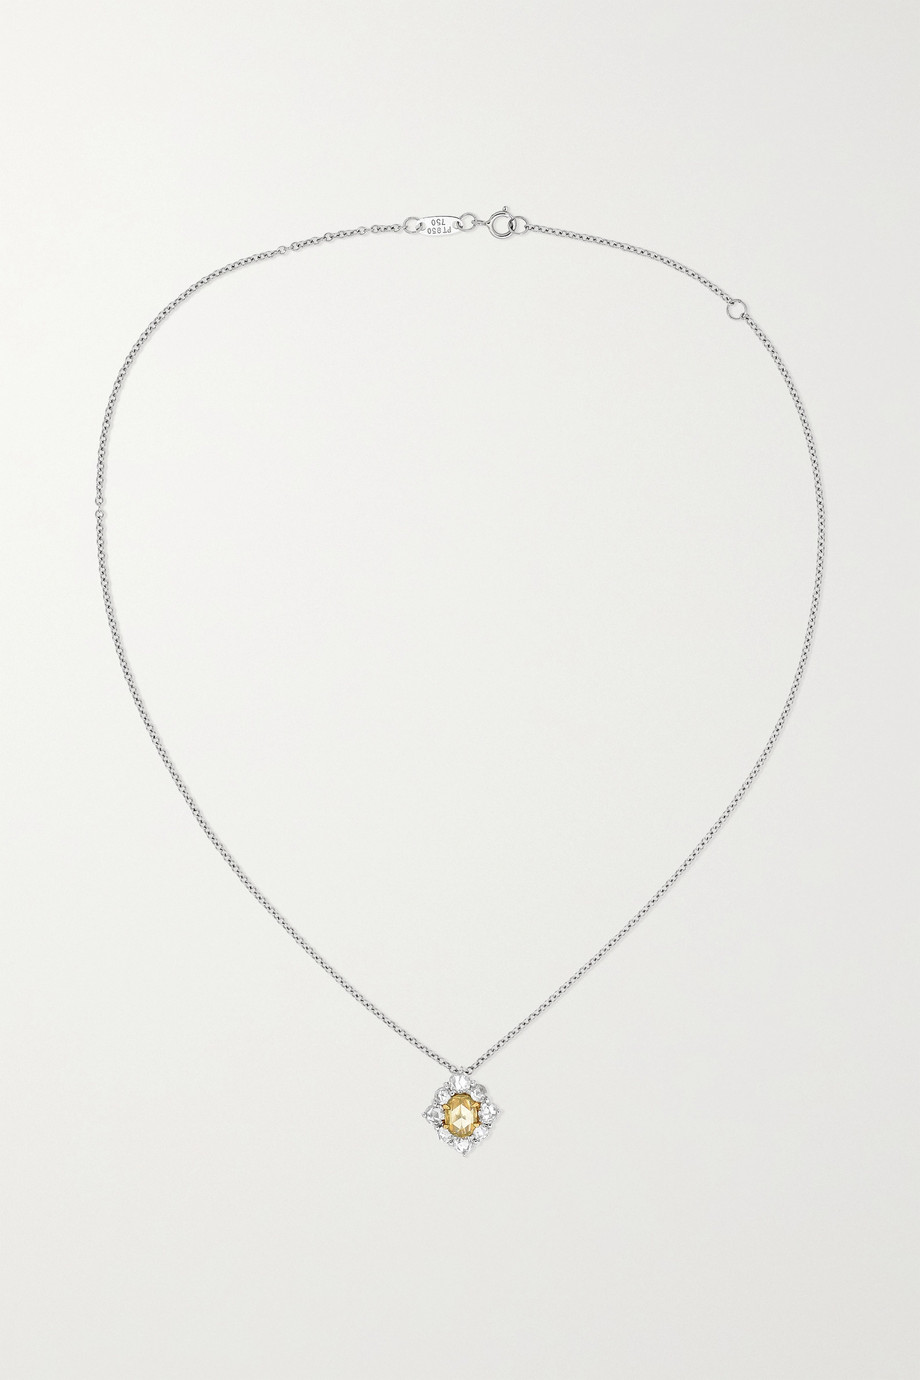 Bayco Platinum and 18-karat gold diamond necklace